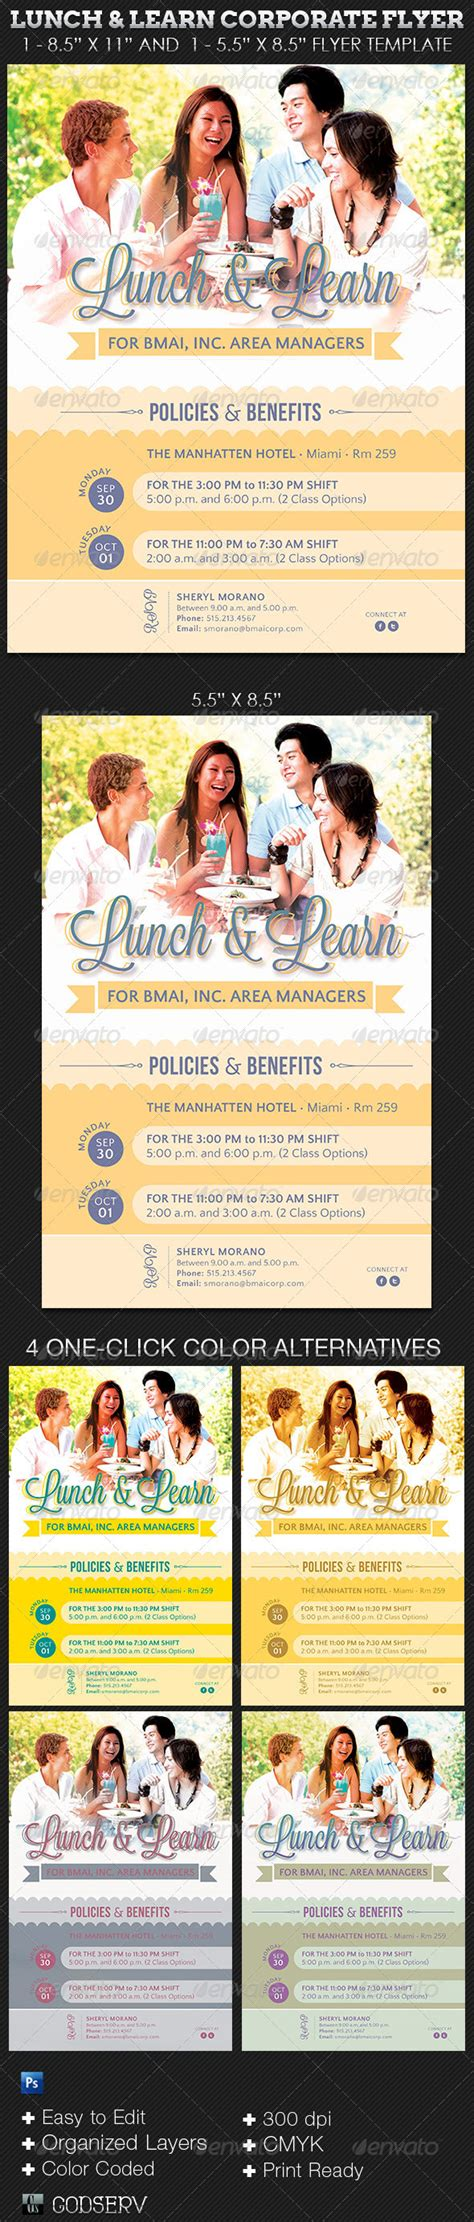 Lunch And Learn Corporate Flyer Template On Behance Lunch And Learn Flyer Template